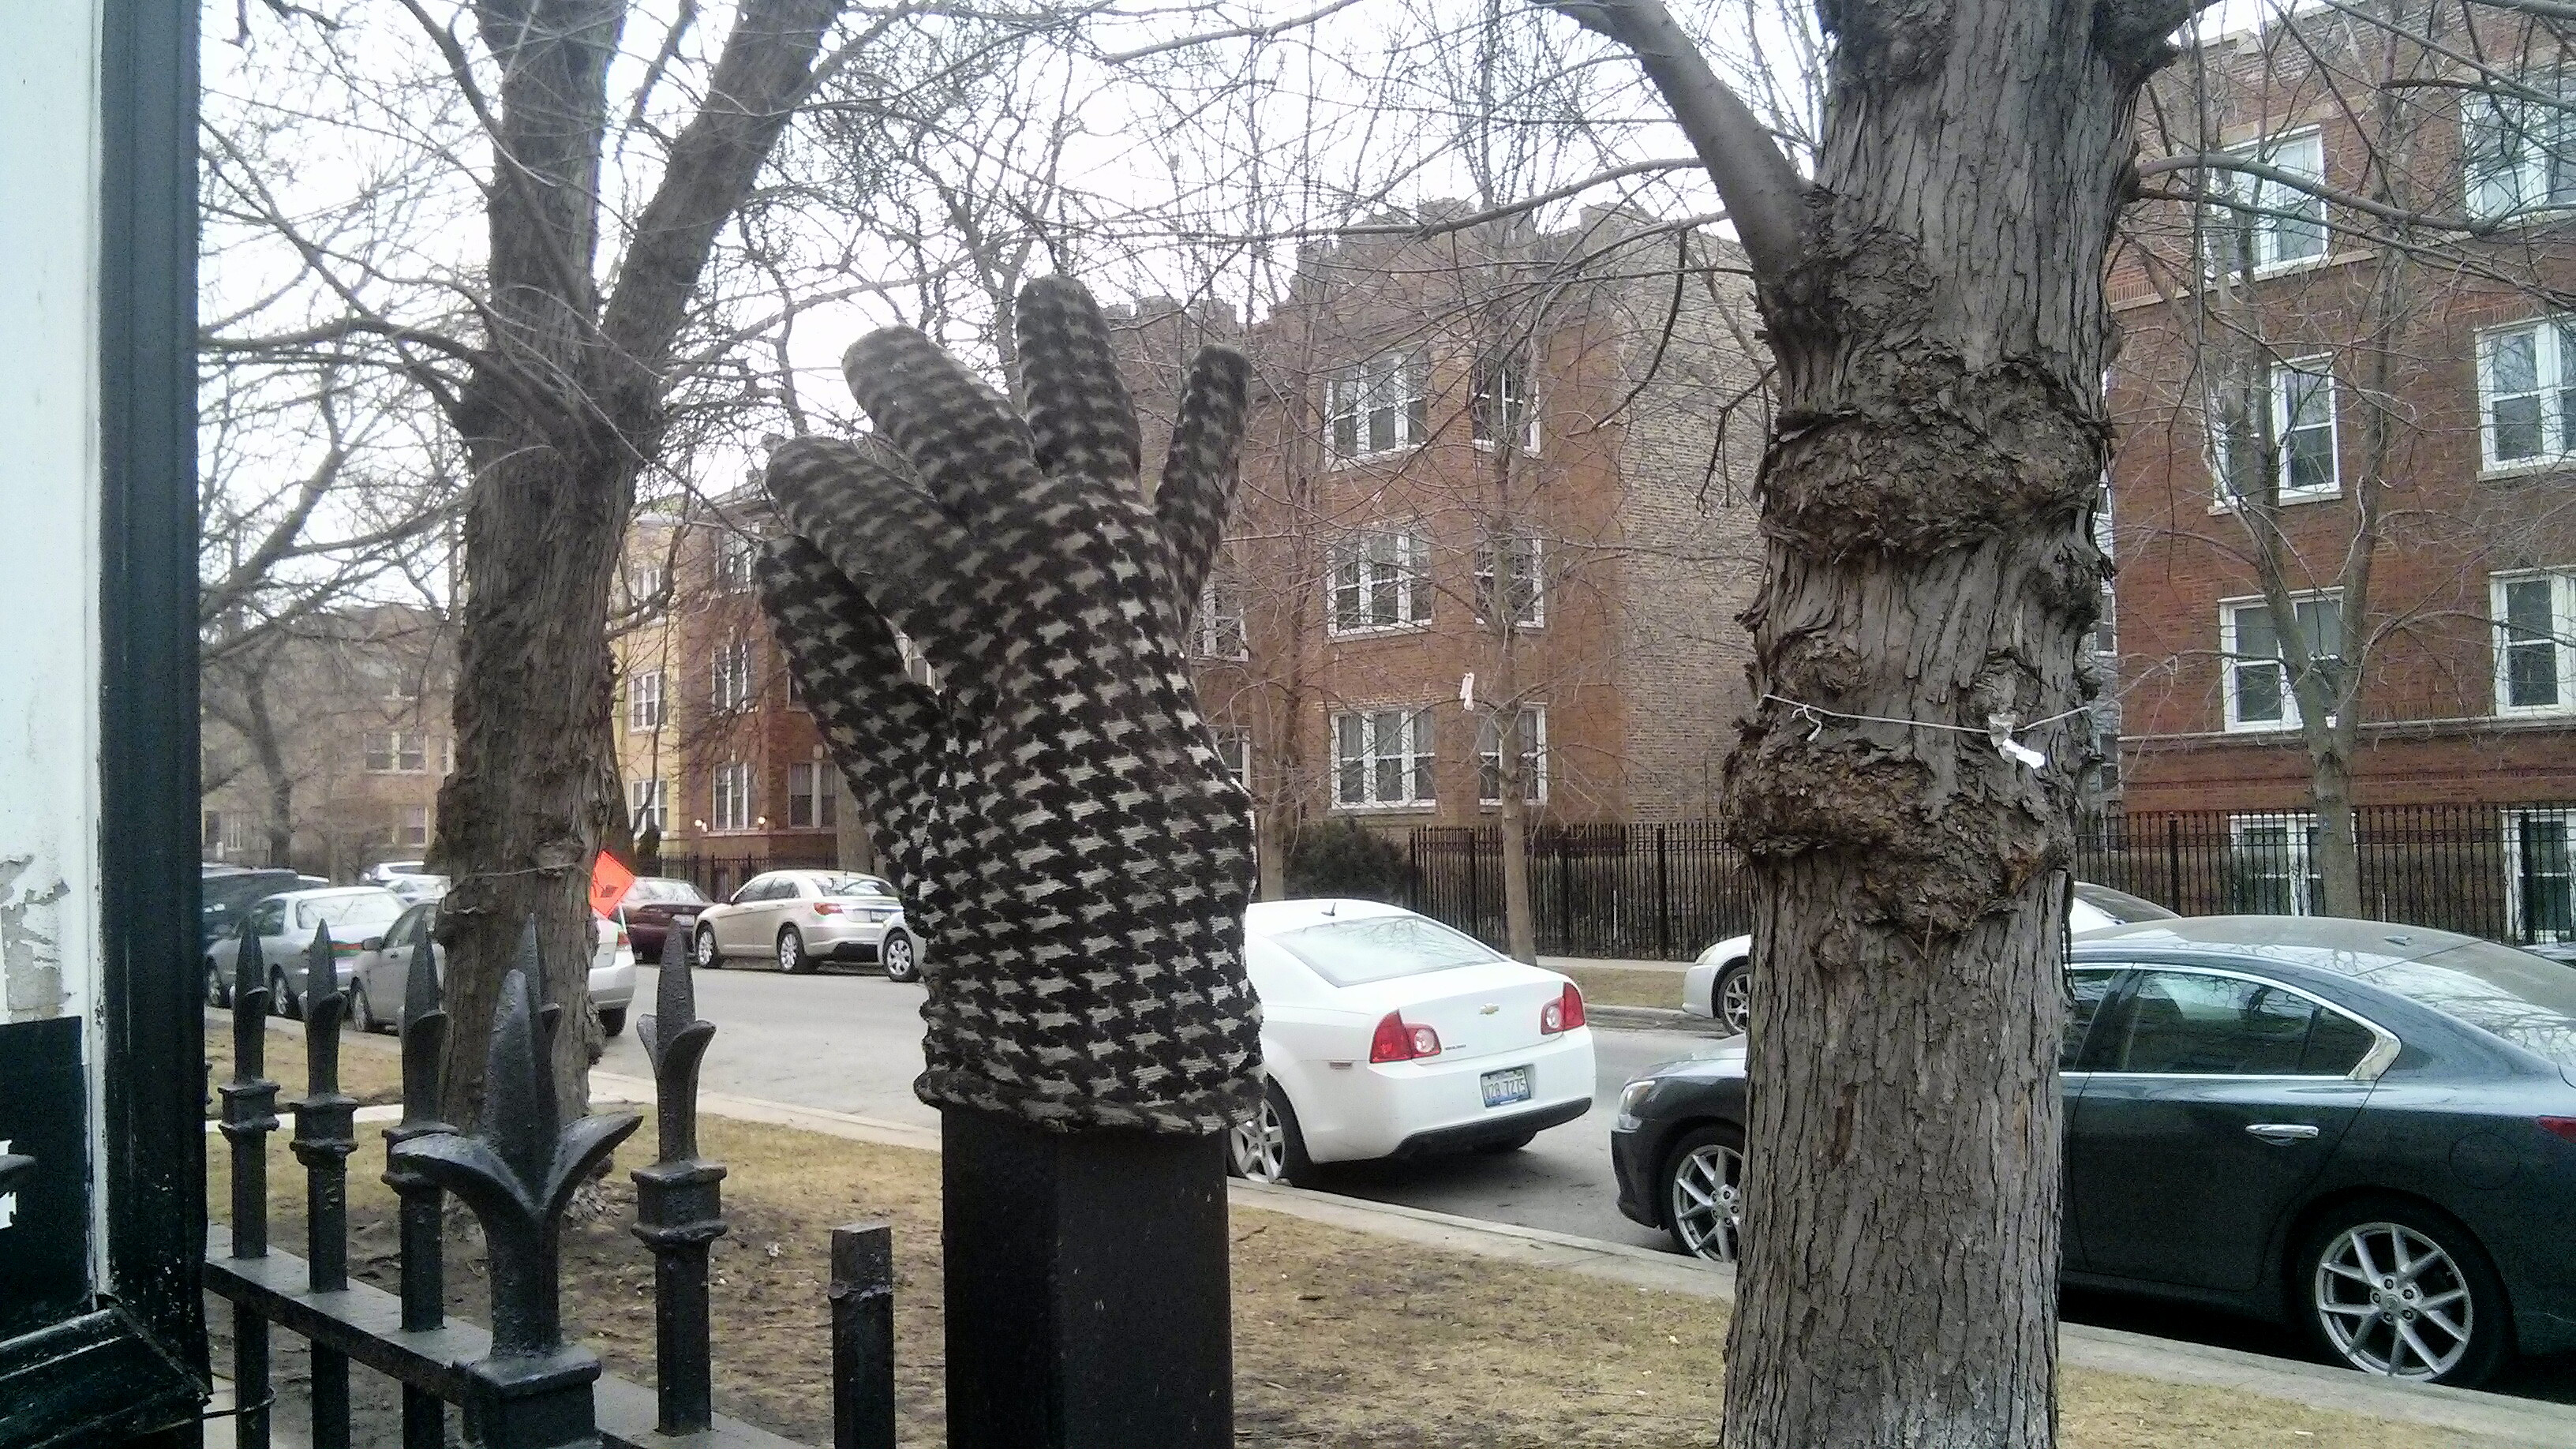 Gallery of Lost Gloves